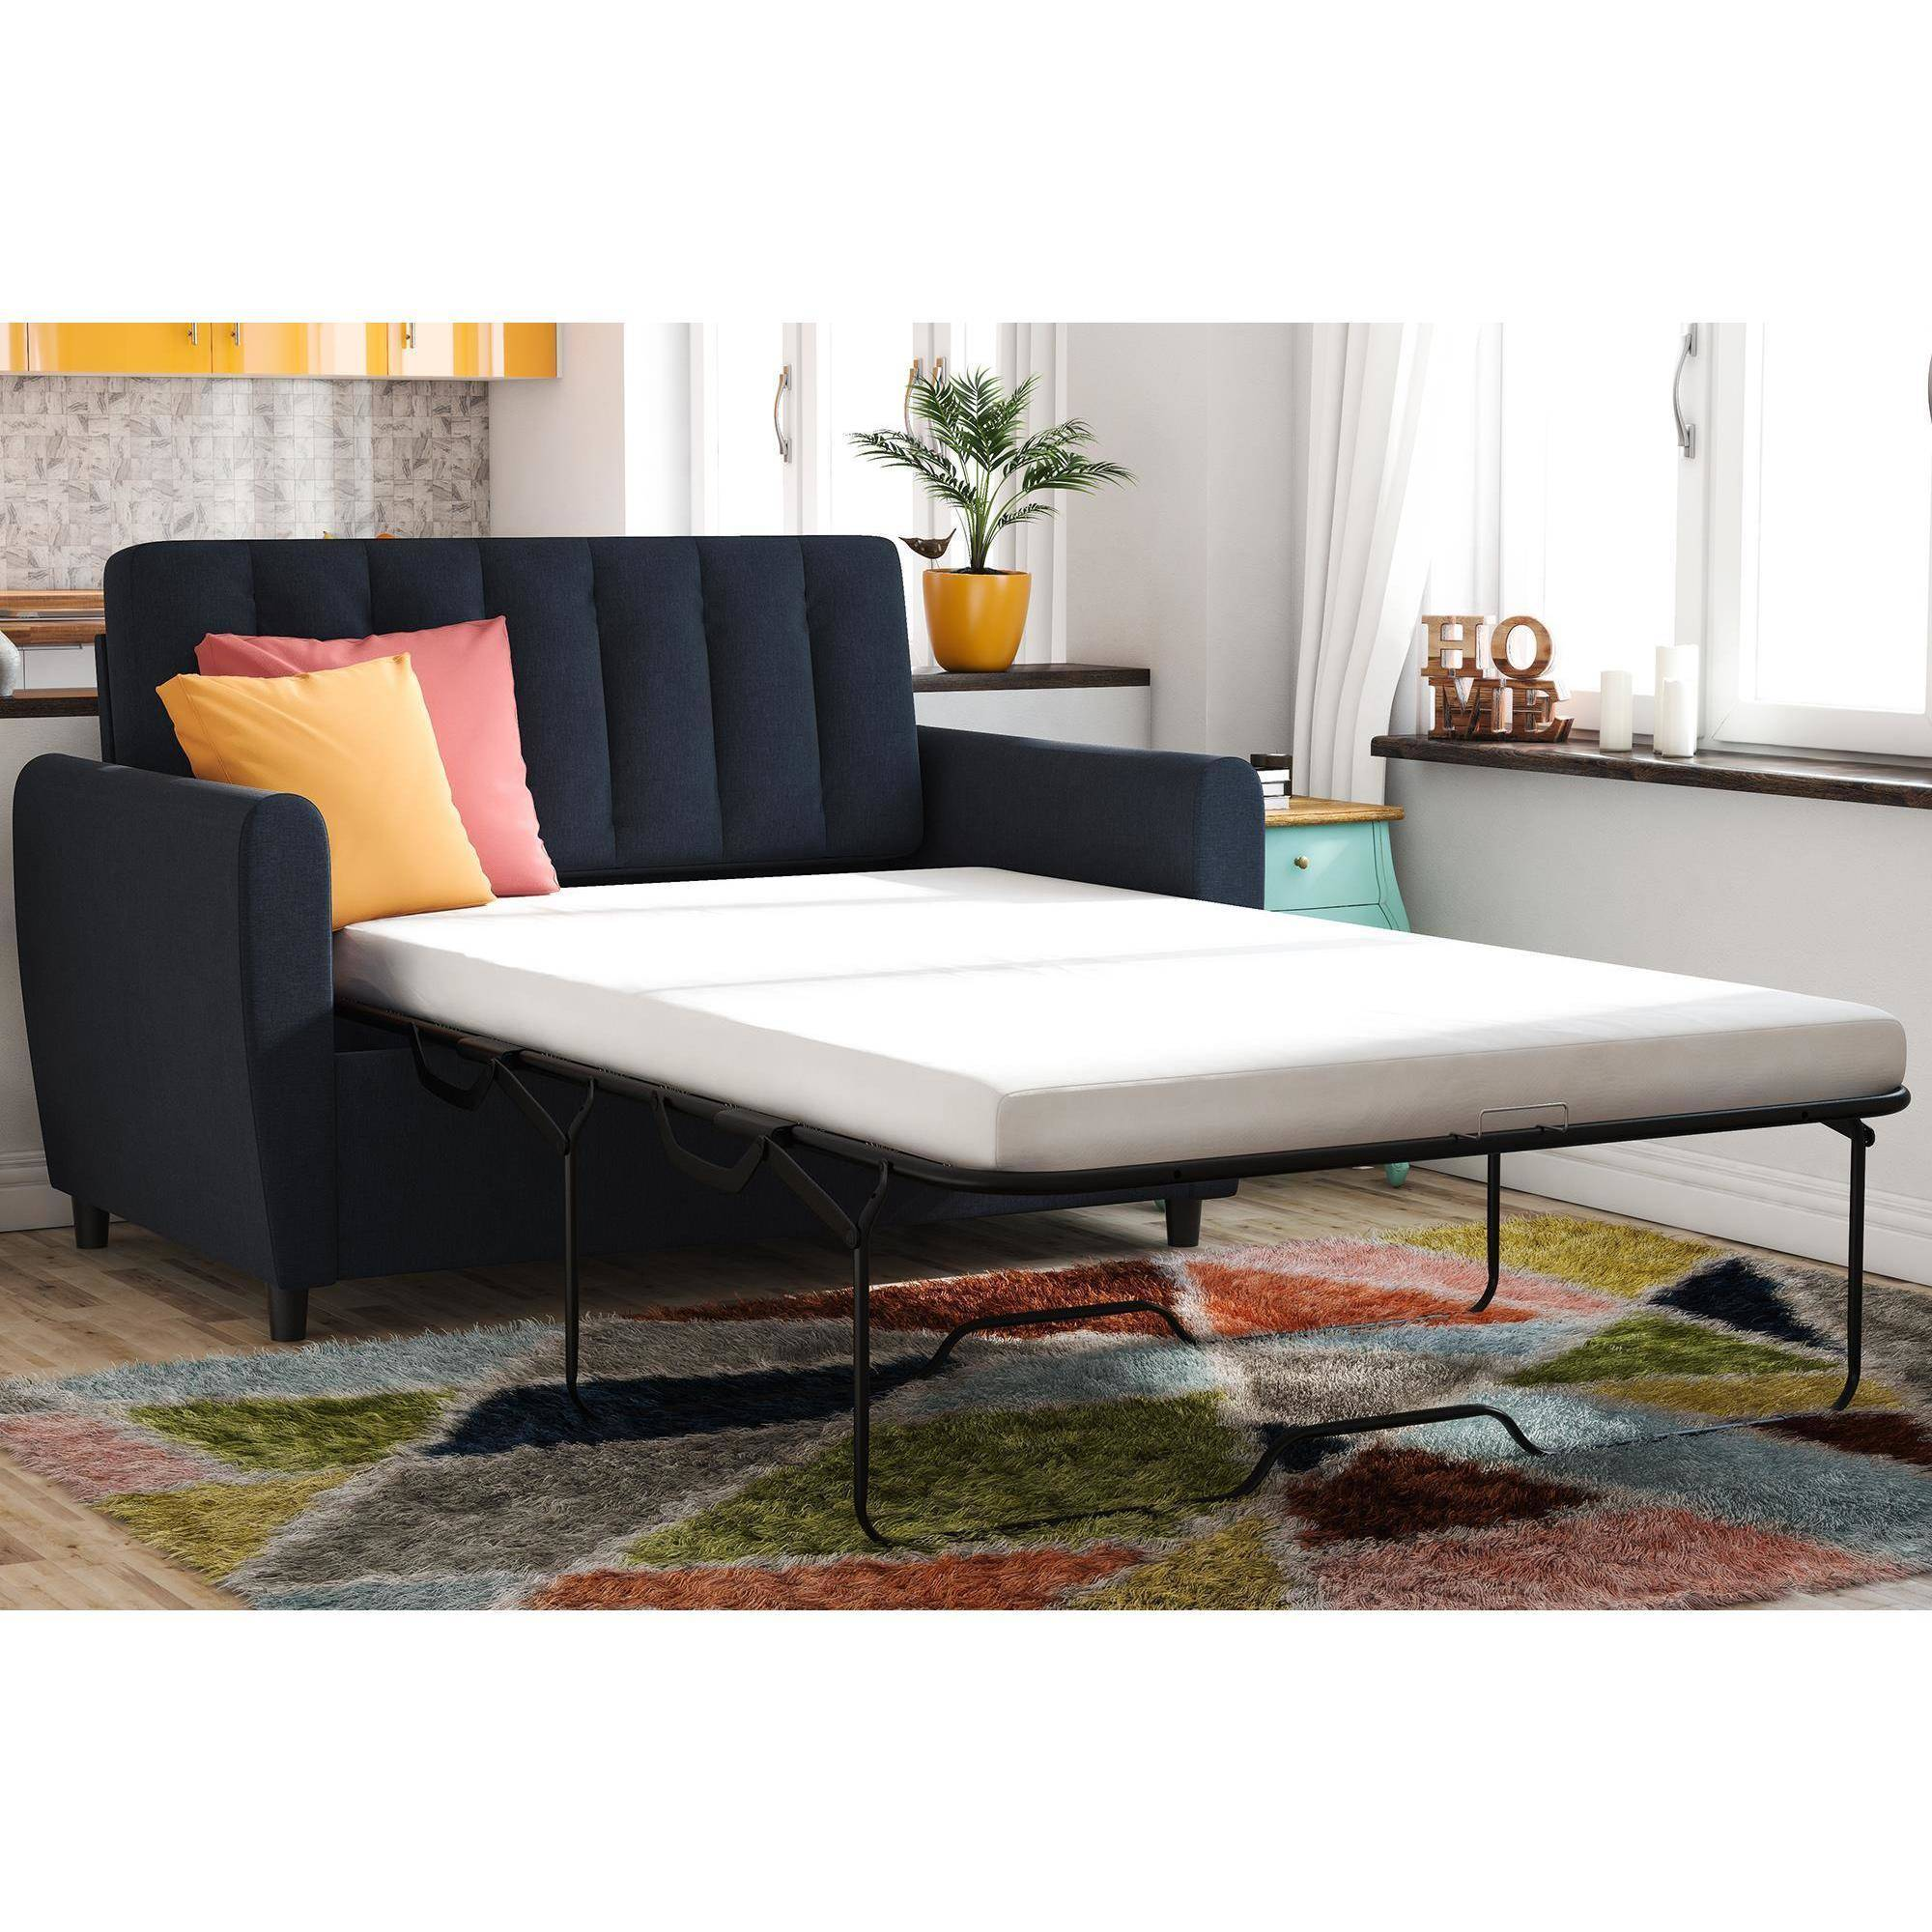 Attractive Novogratz Brittany Sleeper Sofa With CertiPUR US Certified Memory Foam  Mattress, Multiple Colors Image